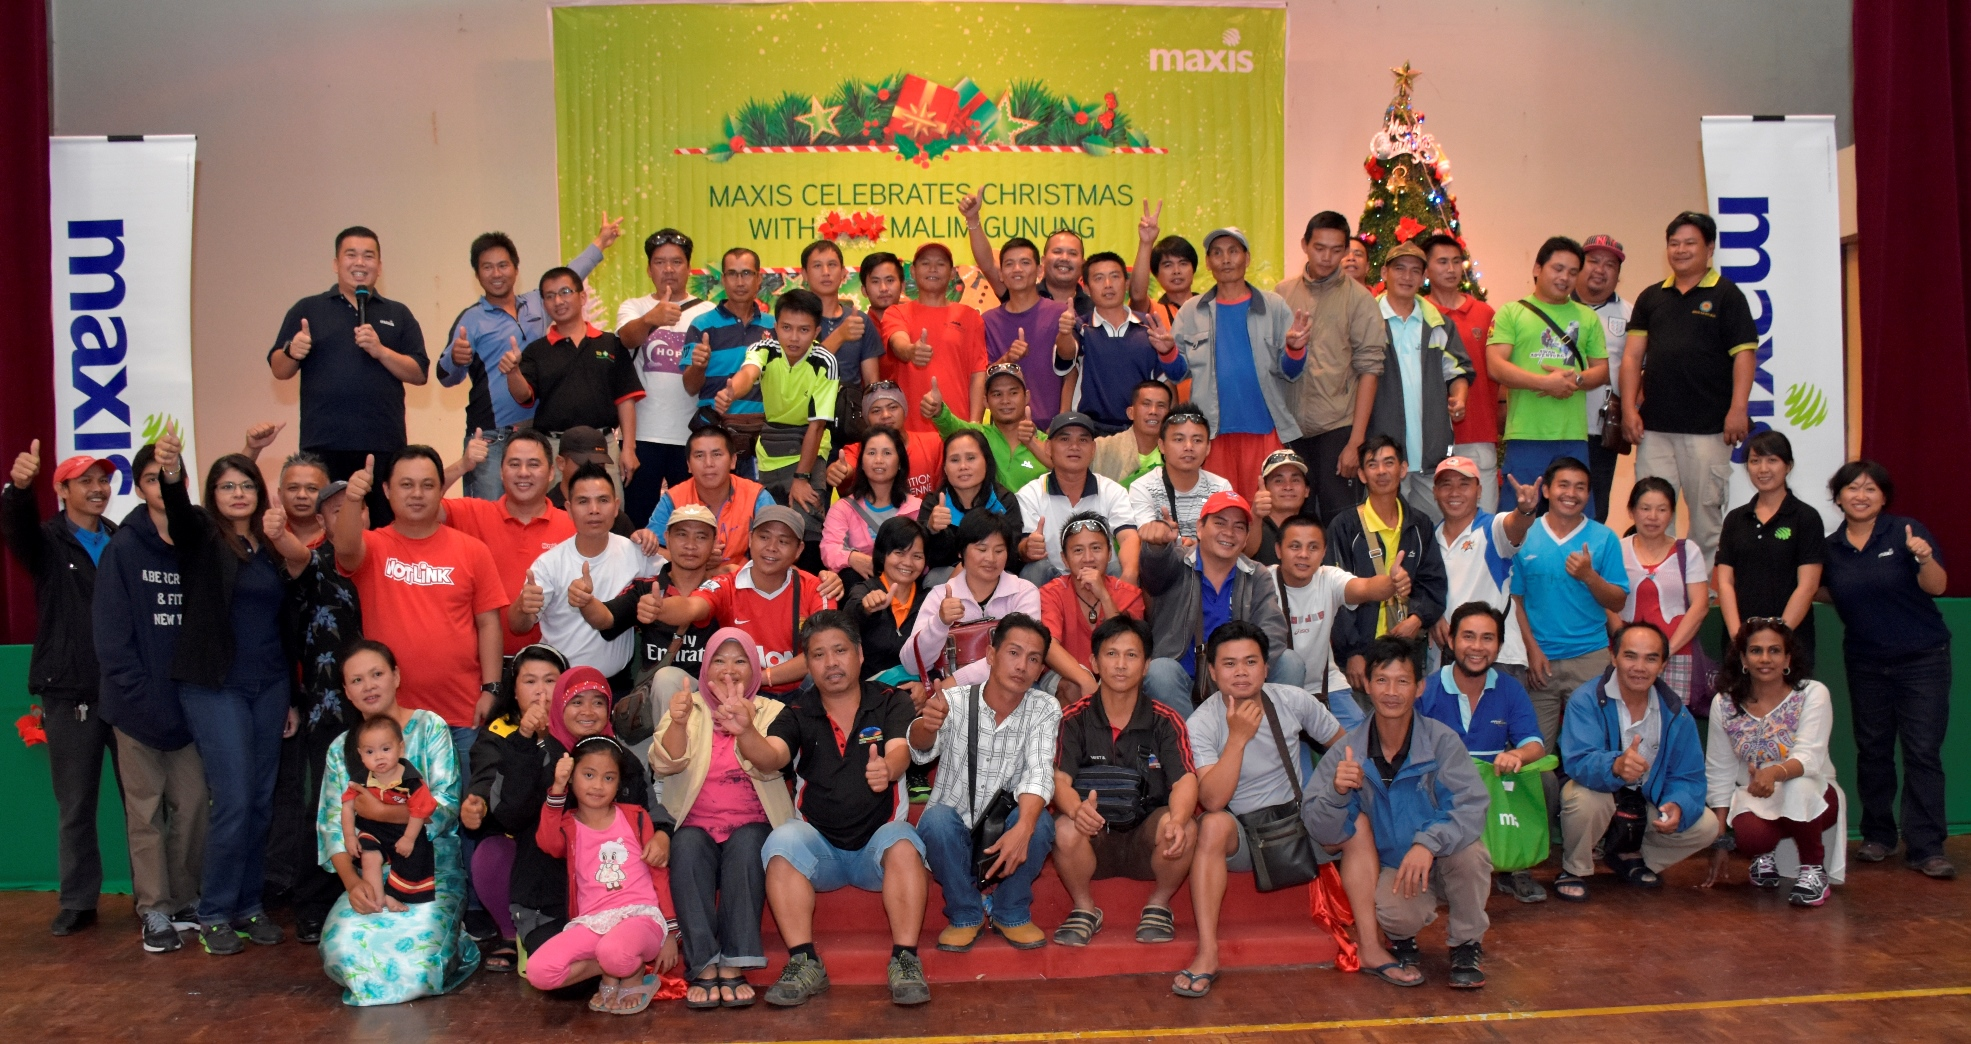 Over 100 members of the Mount Kinabalu Guides Association and their families gathered at Maxis' Christmas event held at Kinabalu Park, Kundasang